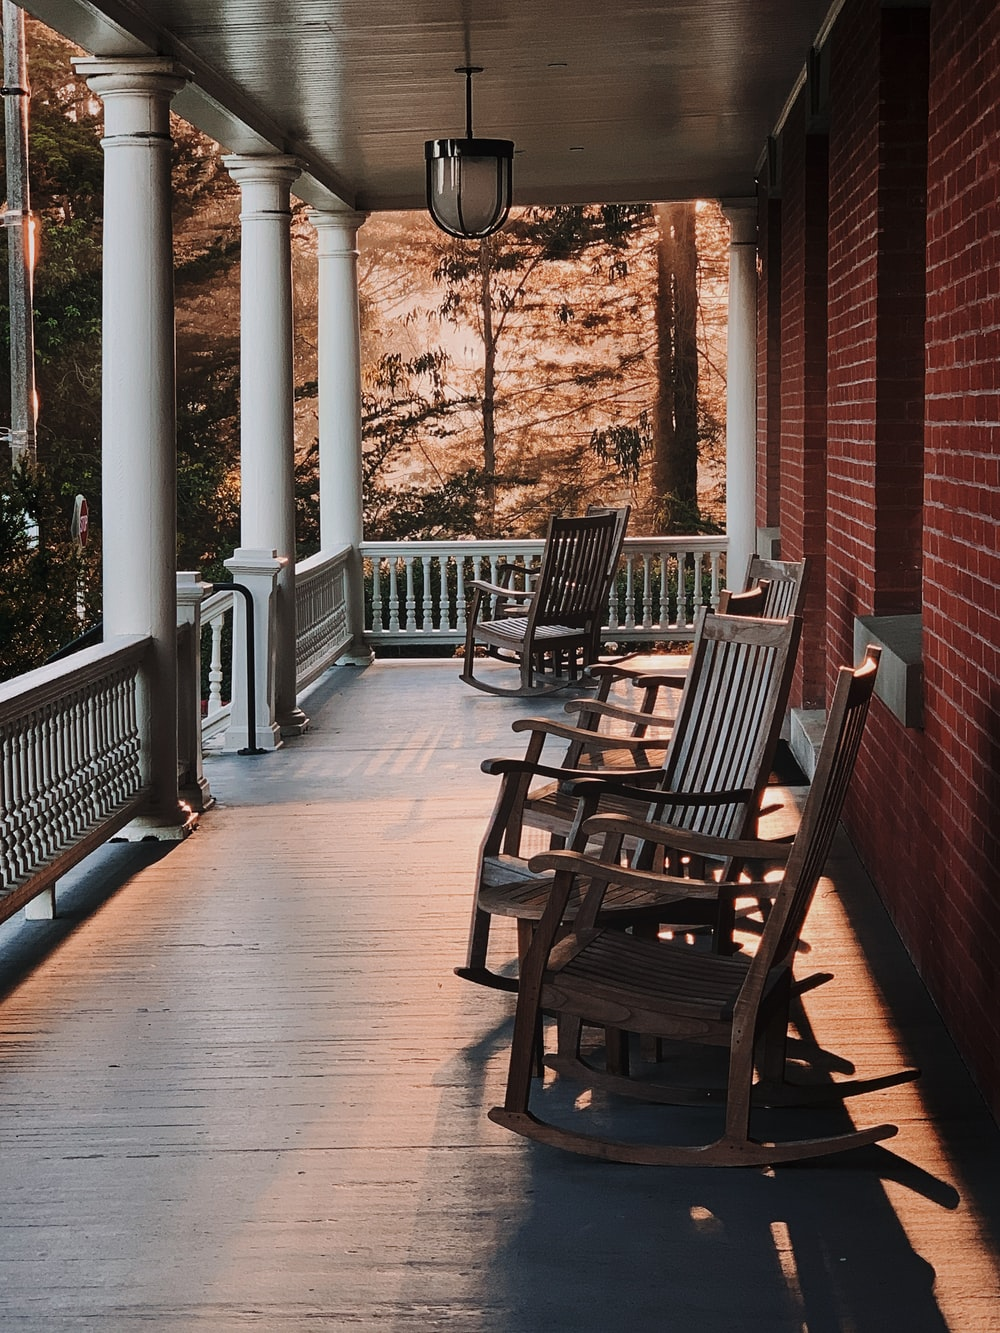 empty rocking chairs by porch